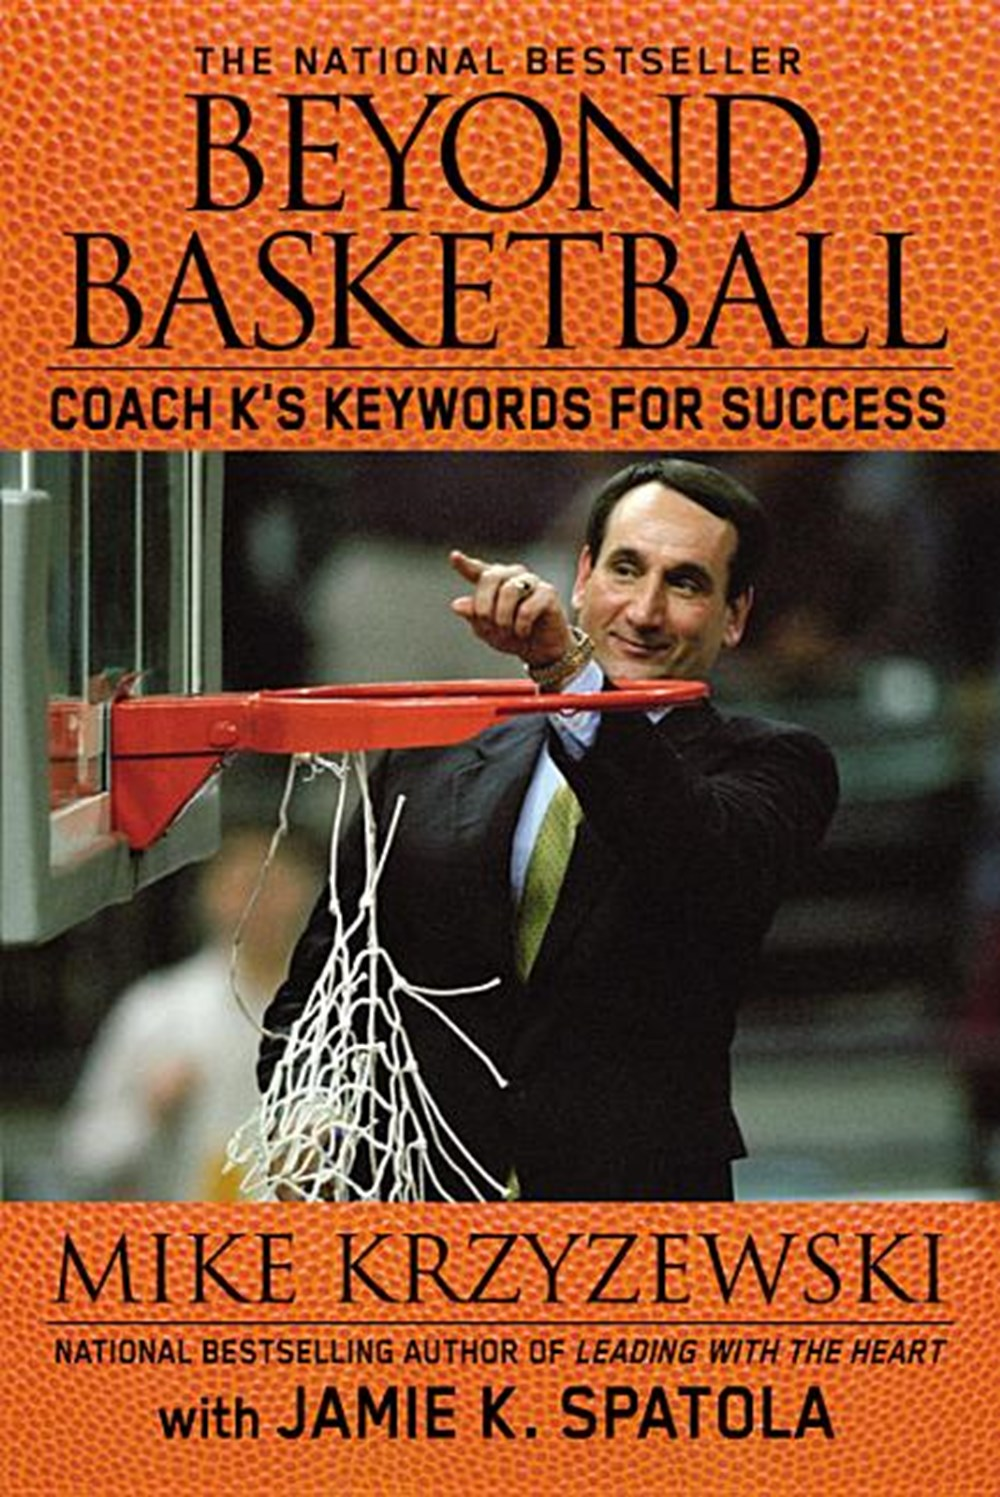 Beyond Basketball Coach K's Keywords for Success